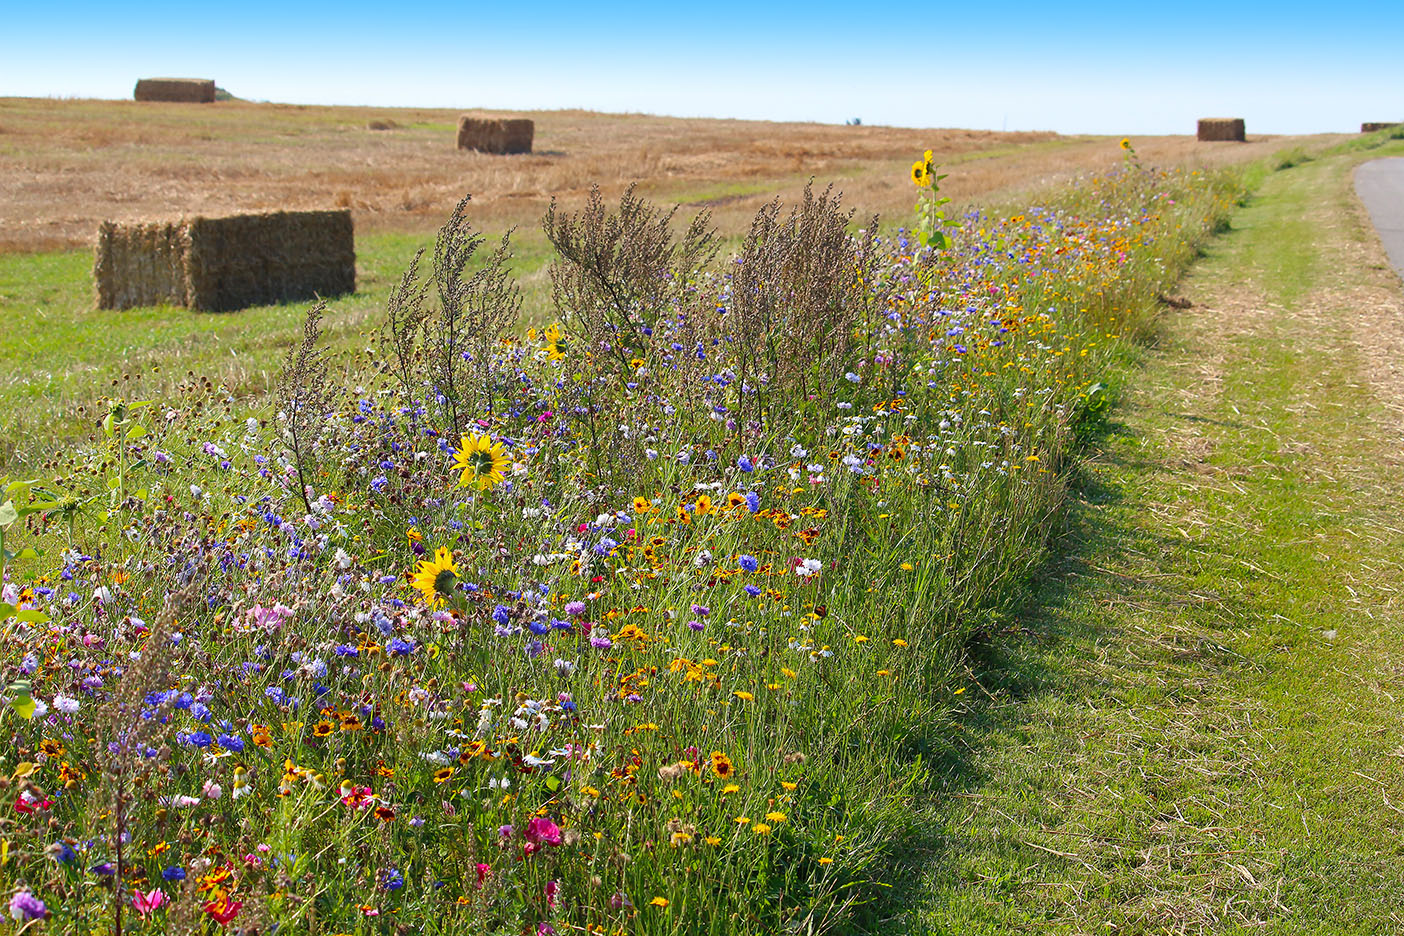 wildflower borders along farm fields to support pollinators and other wildlife